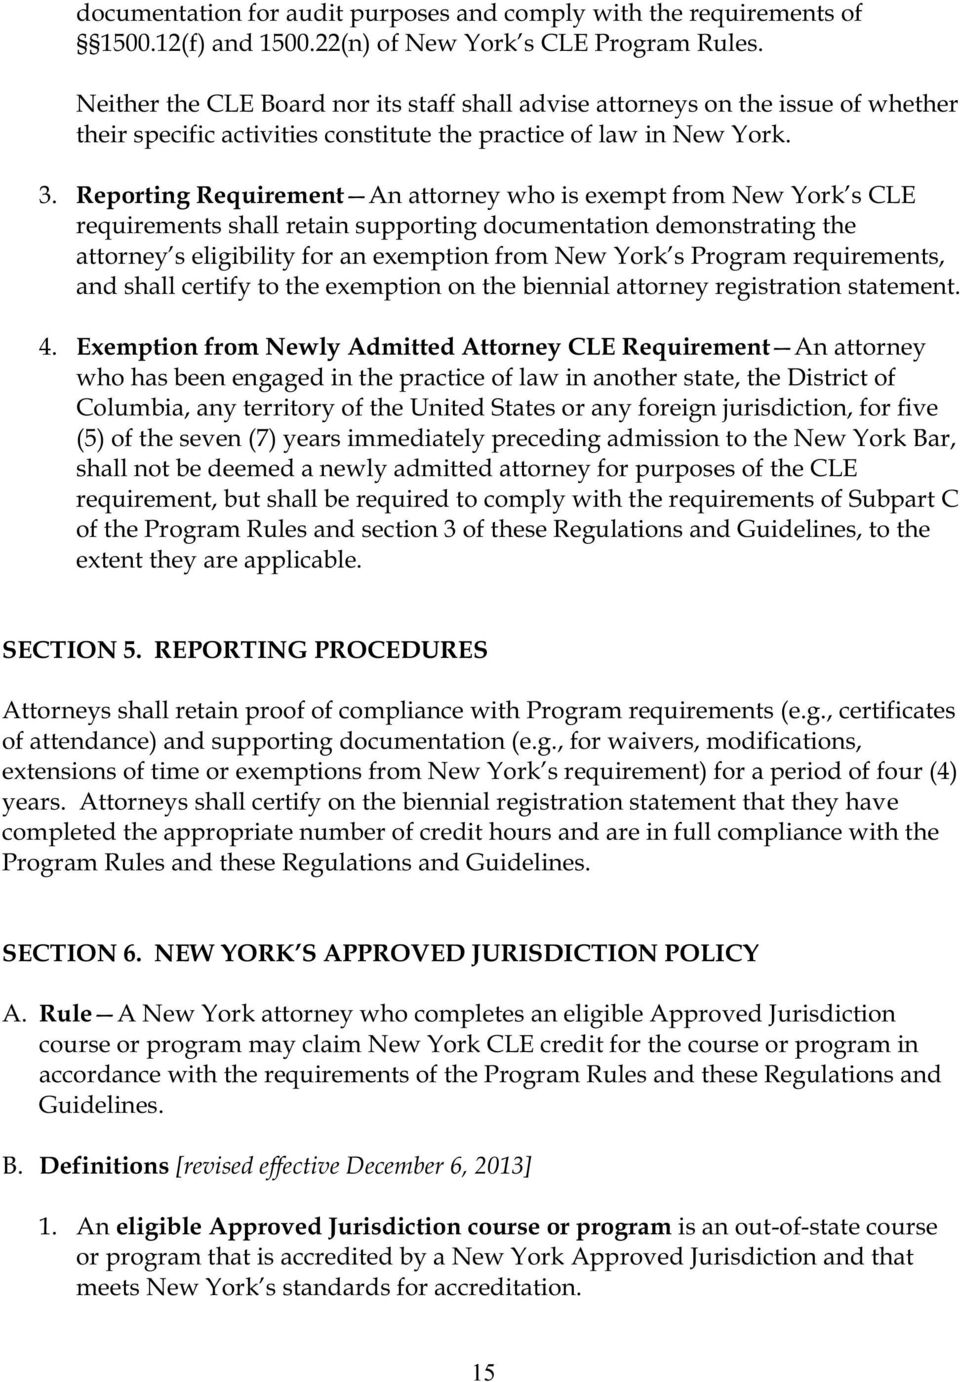 Reporting Requirement An attorney who is exempt from New York s CLE requirements shall retain supporting documentation demonstrating the attorney s eligibility for an exemption from New York s